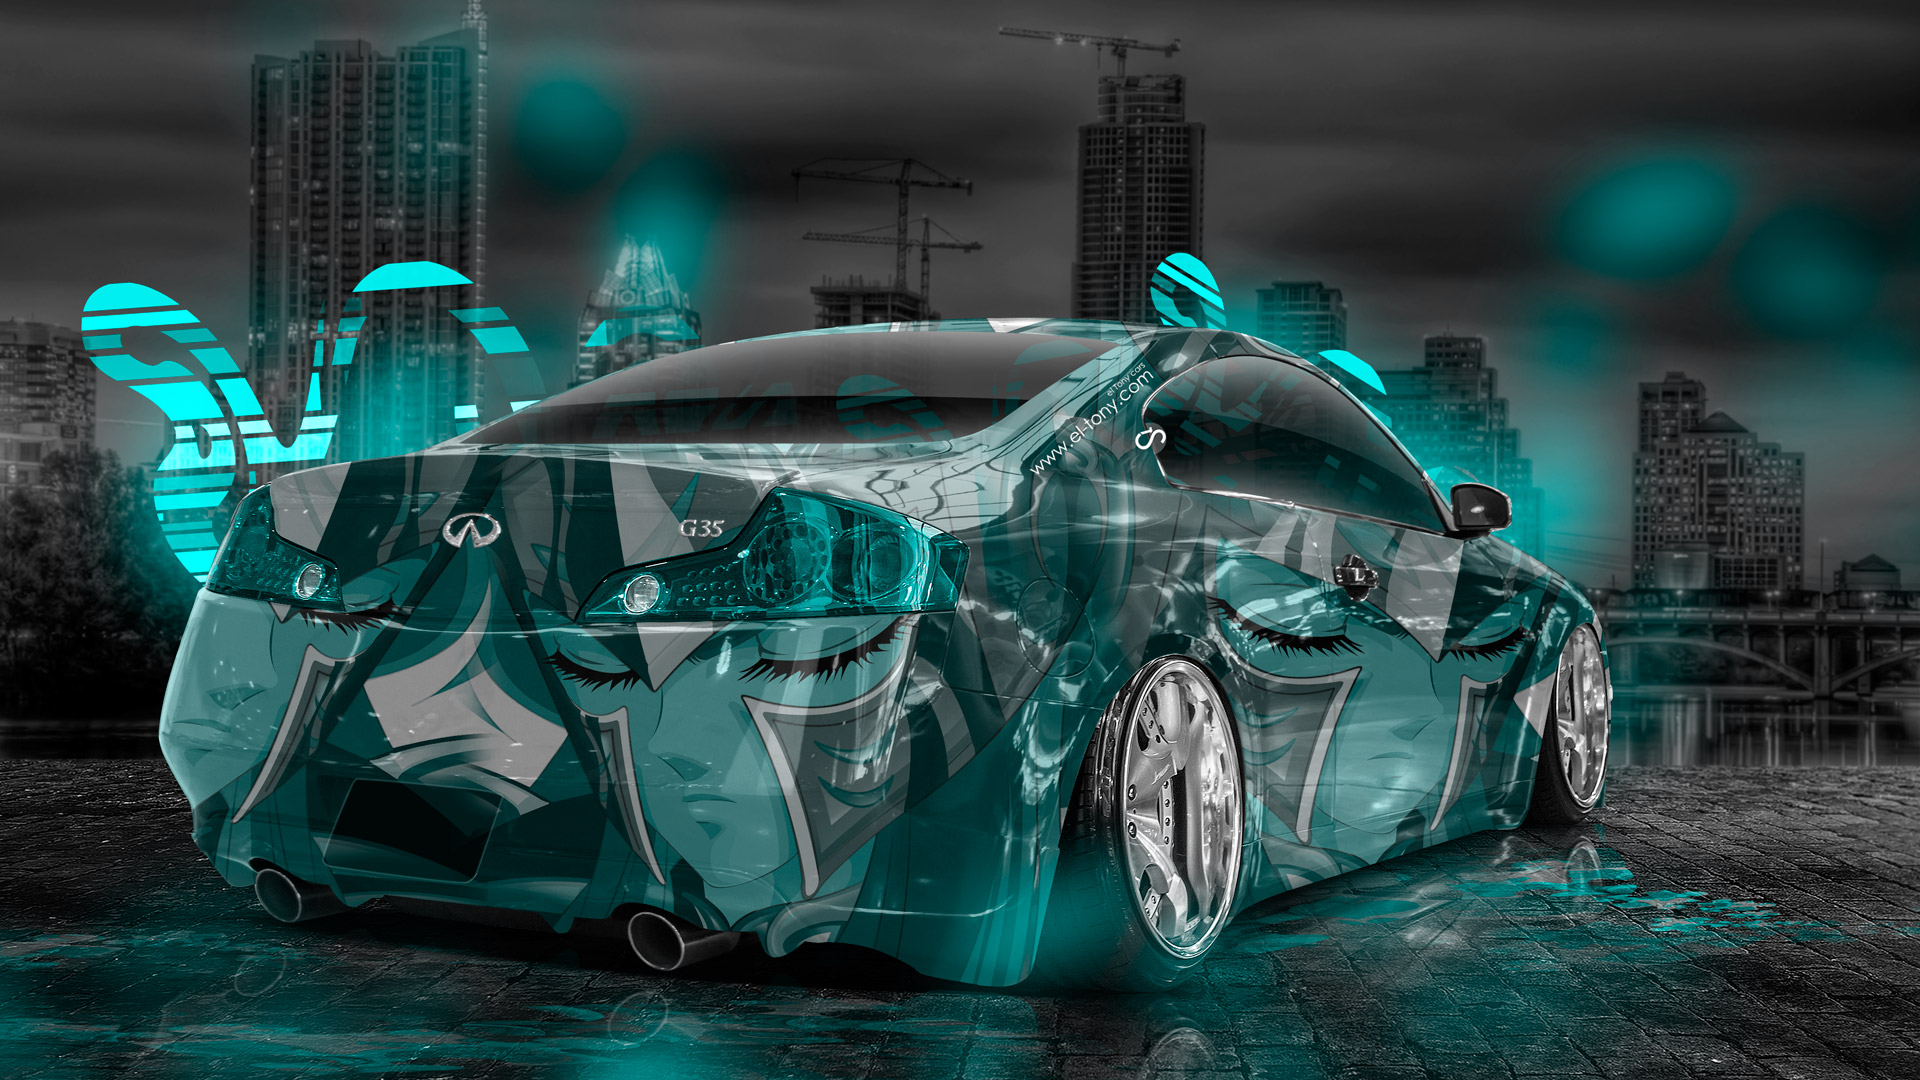 Infiniti-G35-Anime-Aerography-City-Car-2014-Azure-Neon-HD-Wallpapers-design-by-Tony-Kokhan-[www.el-tony.com]